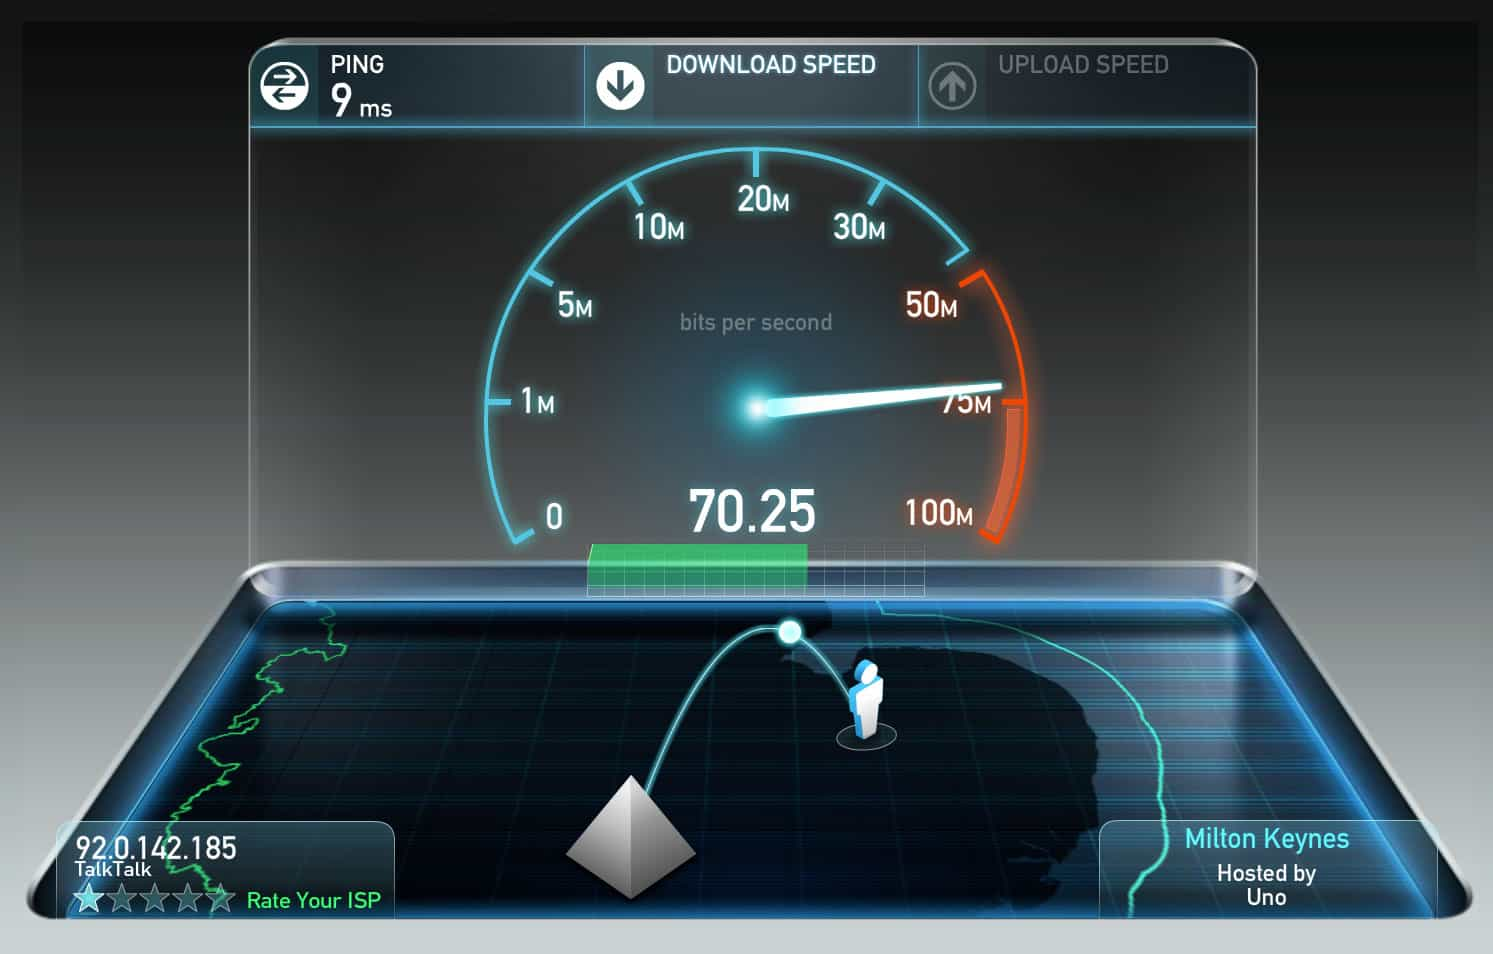 Speedtest Online Speed Tests: How To Use Them And Which Are The Best